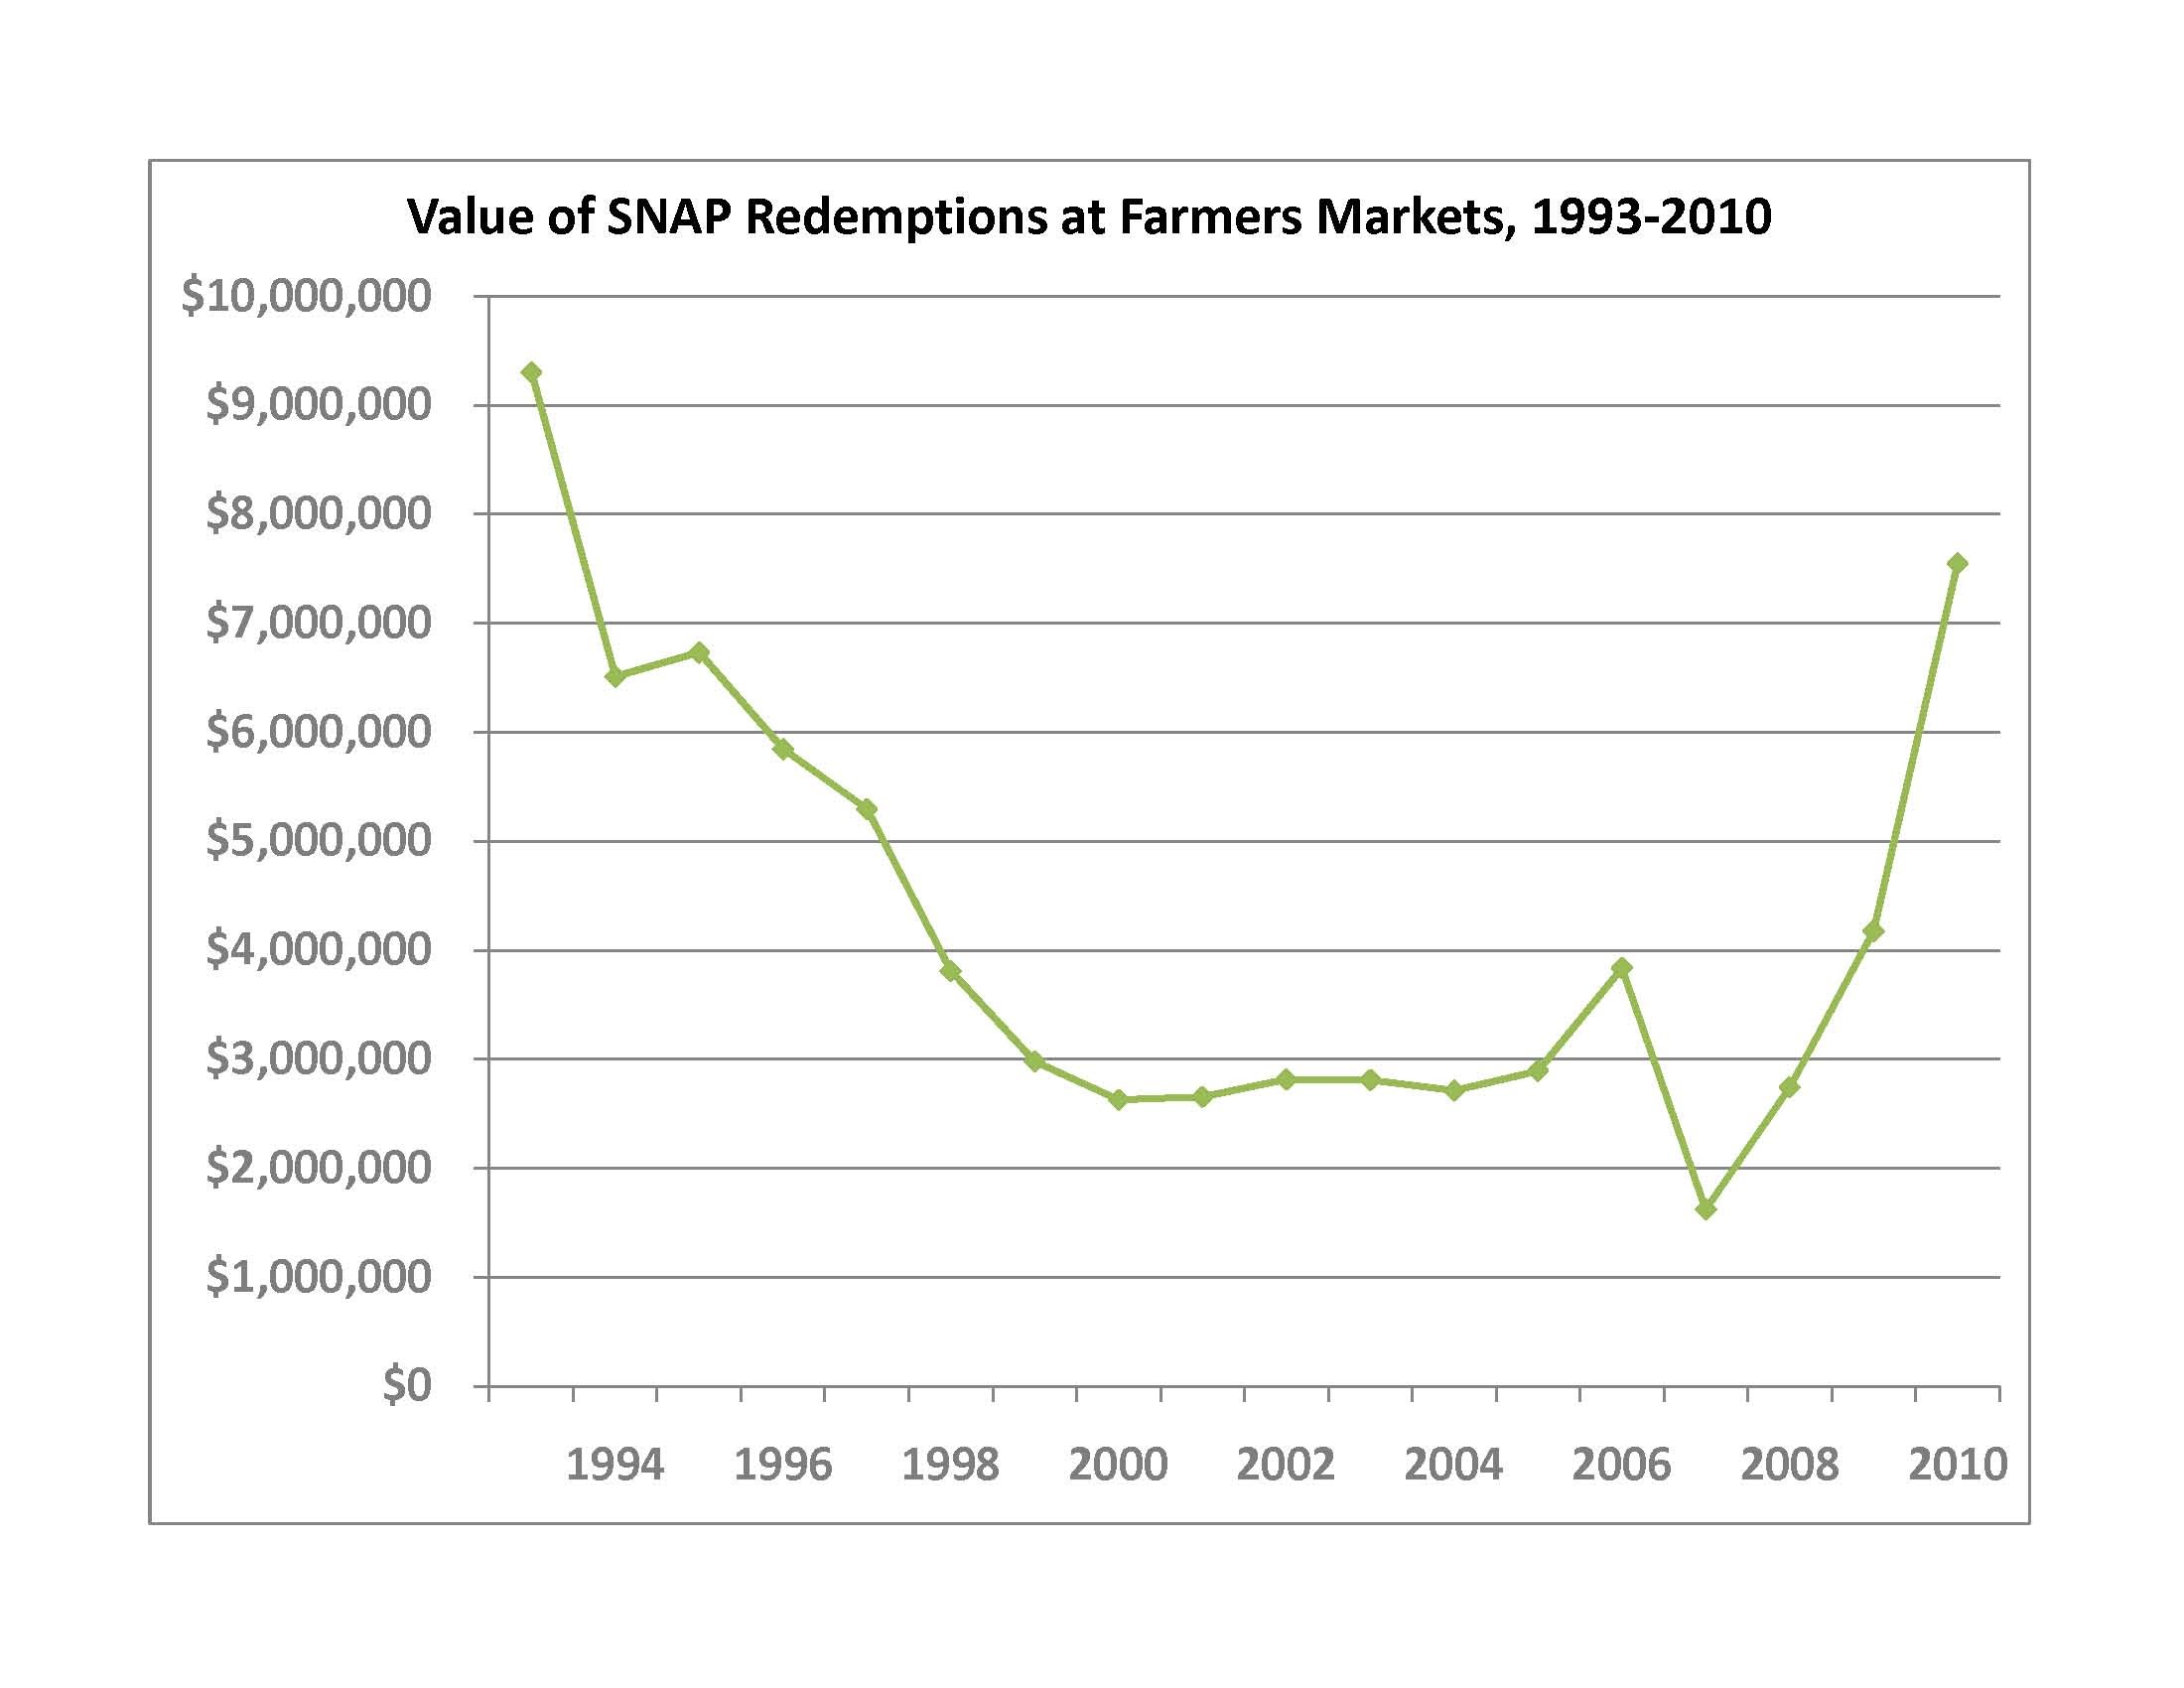 http://farmersmarketcoalition.org/snap-sales-soar-2010/ This chart compares the growth of SNAP redemption at farmers markets between 1993-2010